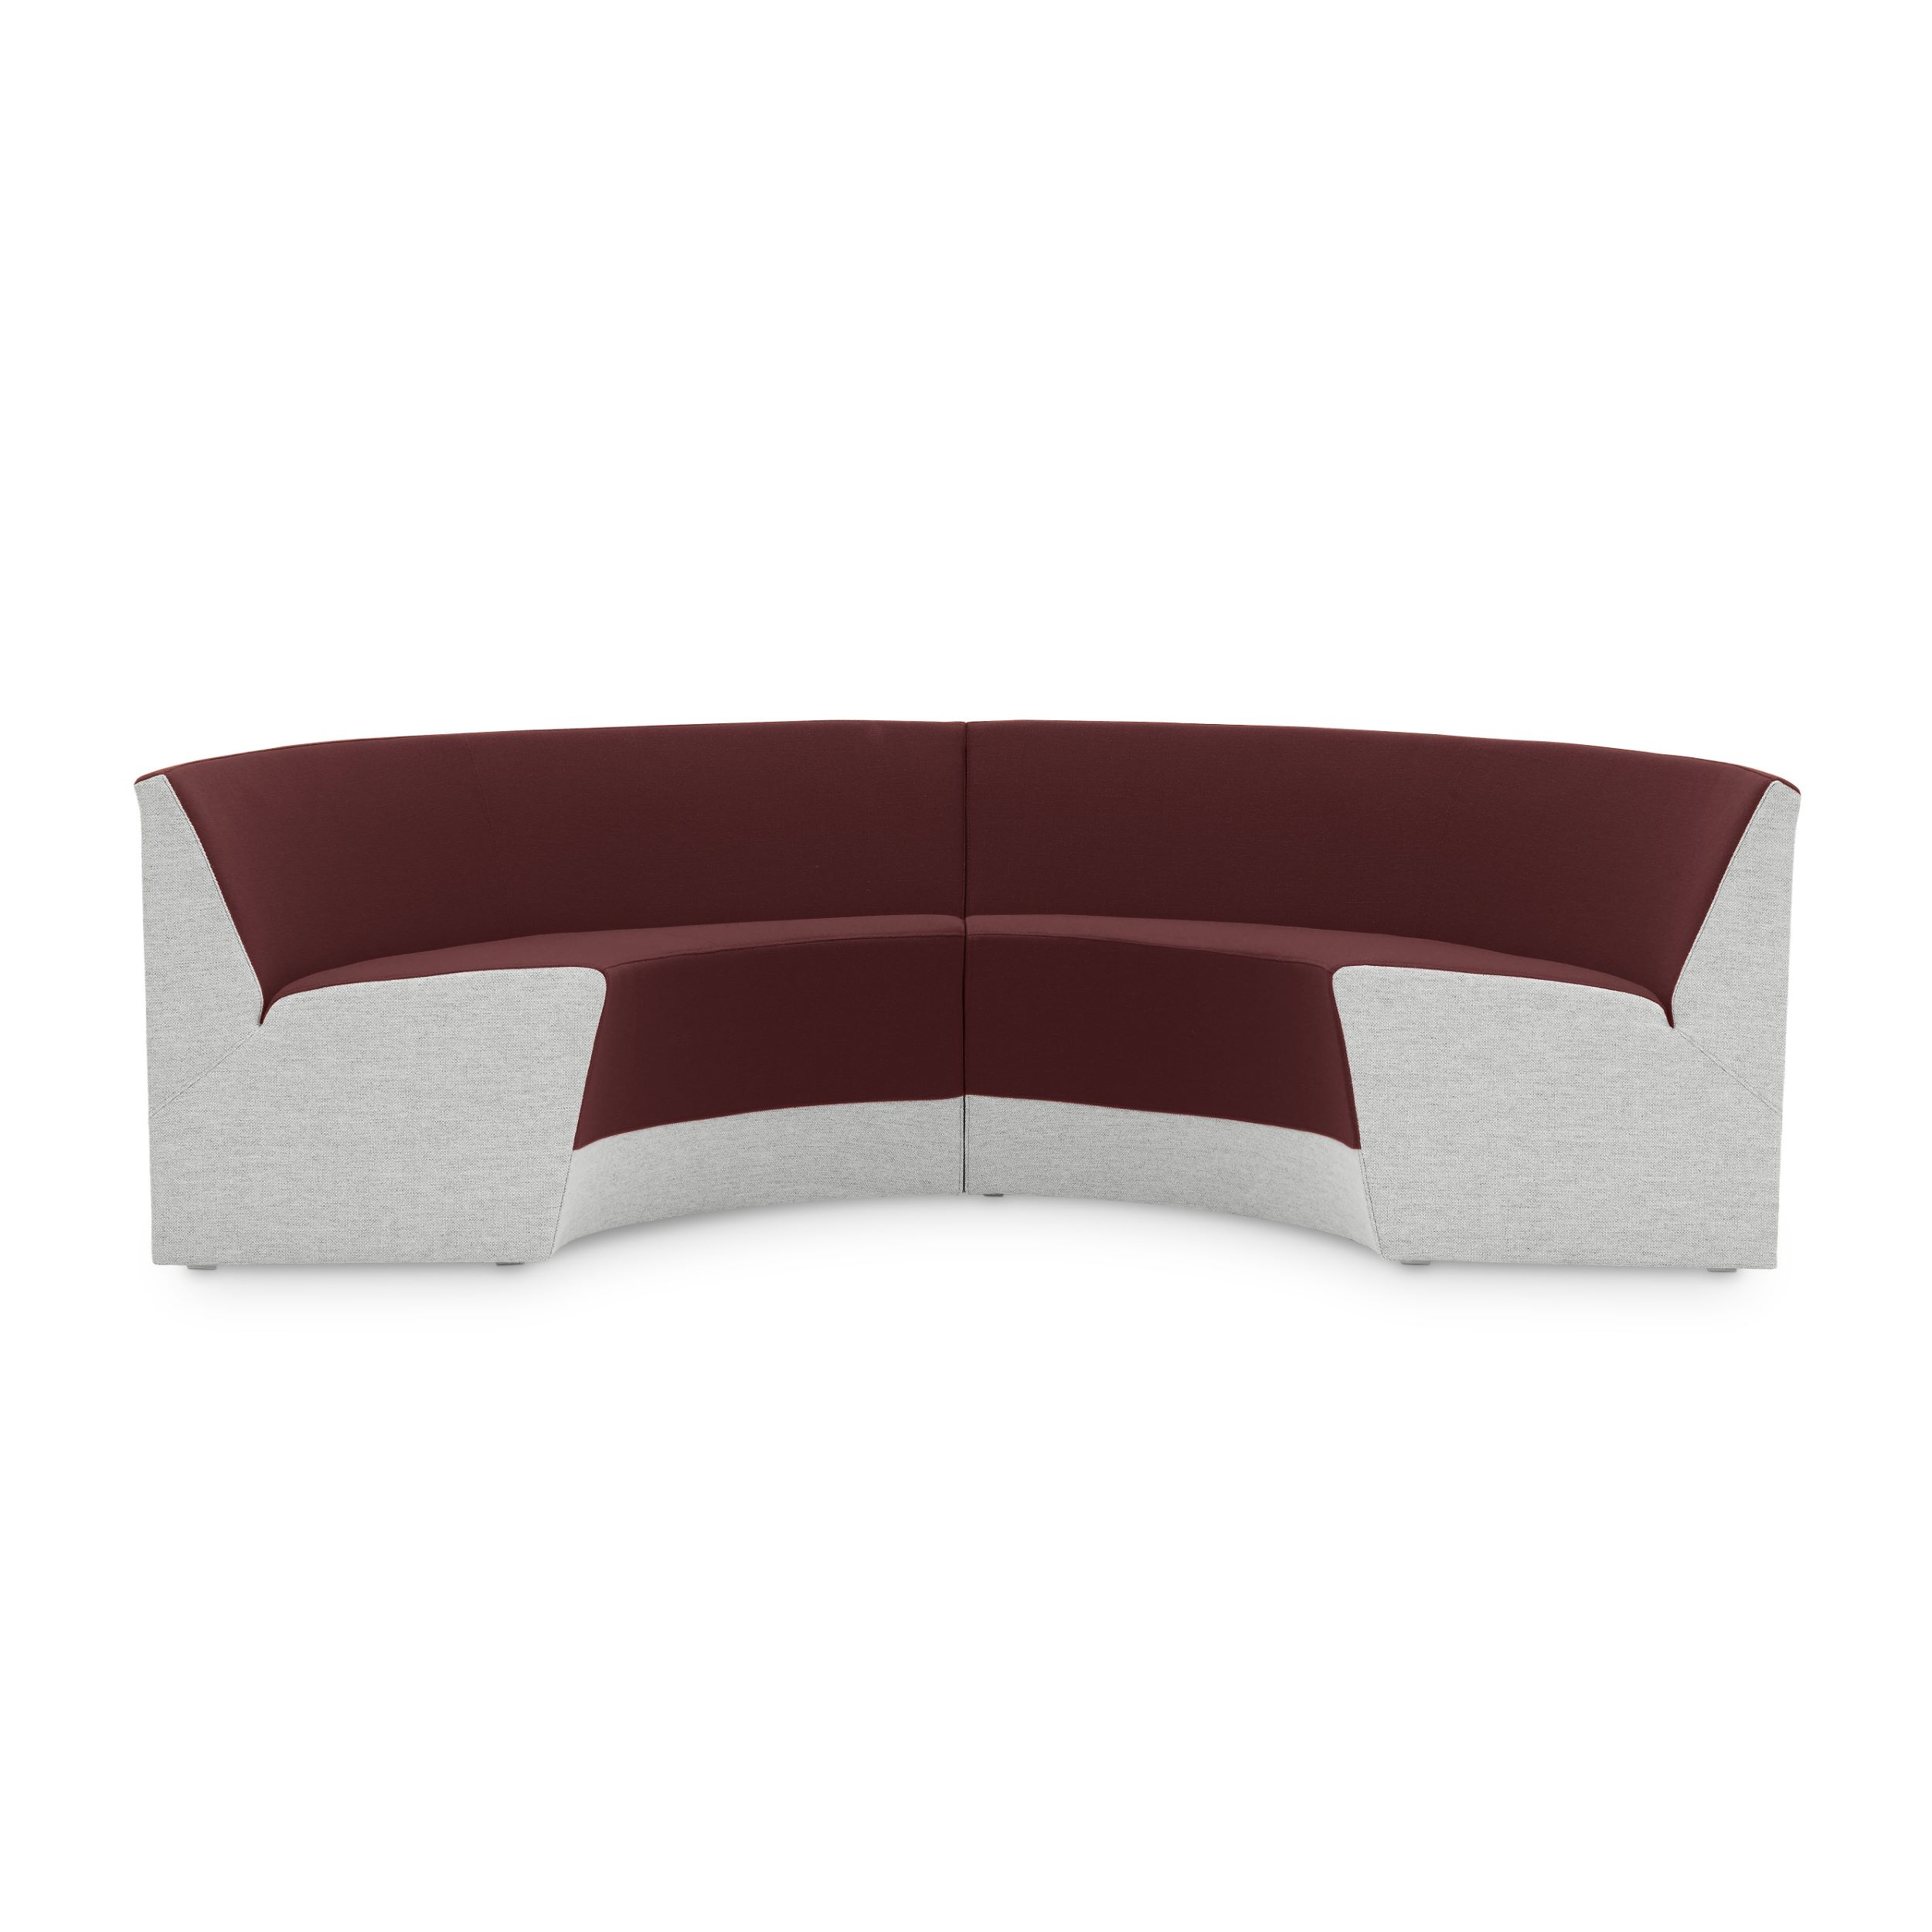 Sofa King Easy: Swedish Design By Thomas Sandell